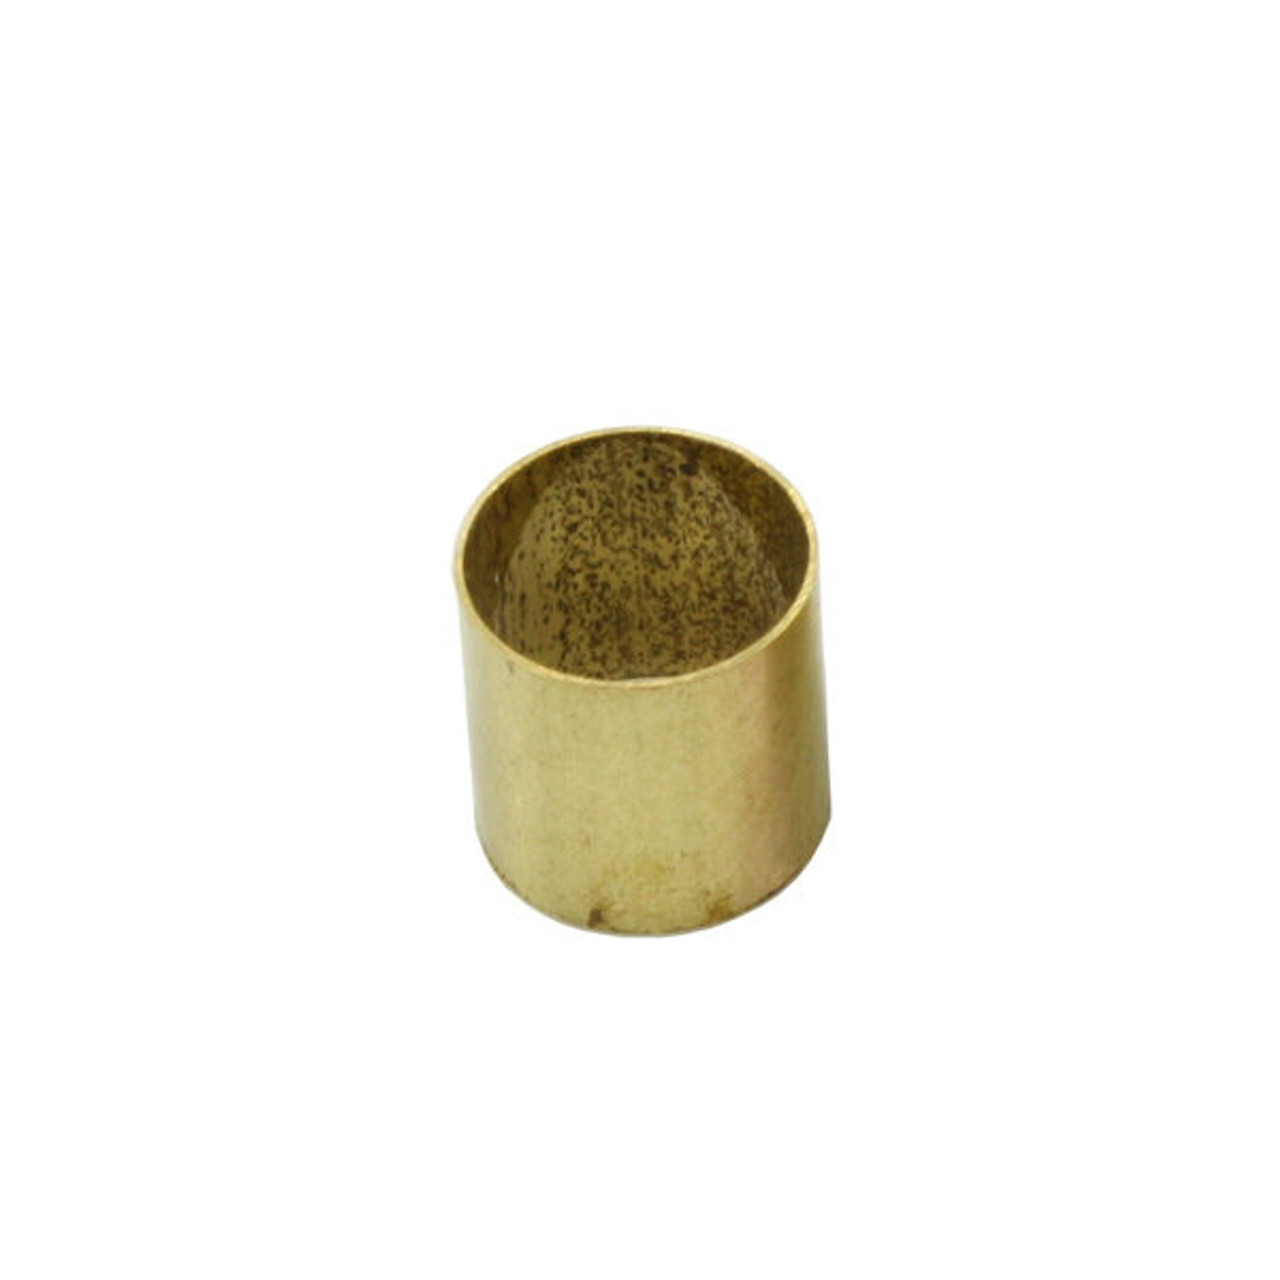 Brass Pot Sleeve